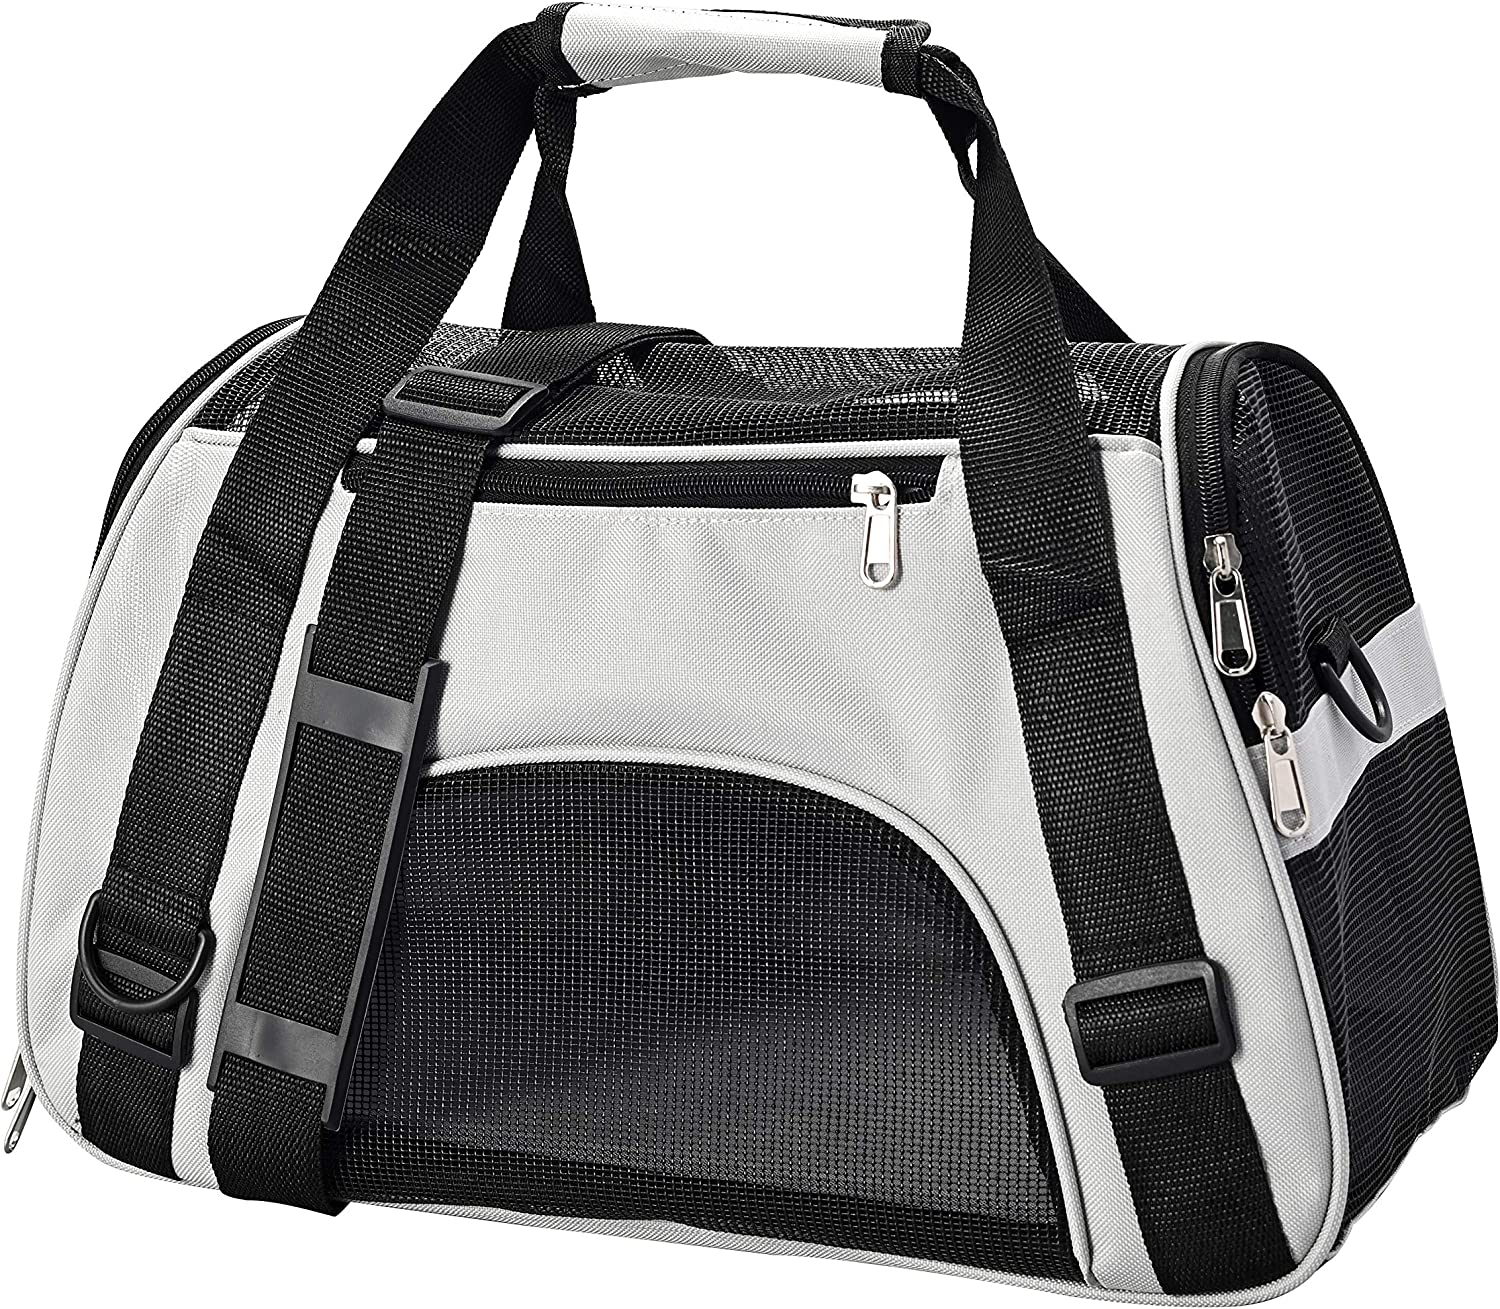 PPOGOO Pet Carriers for Small Cats Cheap bargain 10kg Dogs 17x7.5x11 22lb and Max 50% OFF